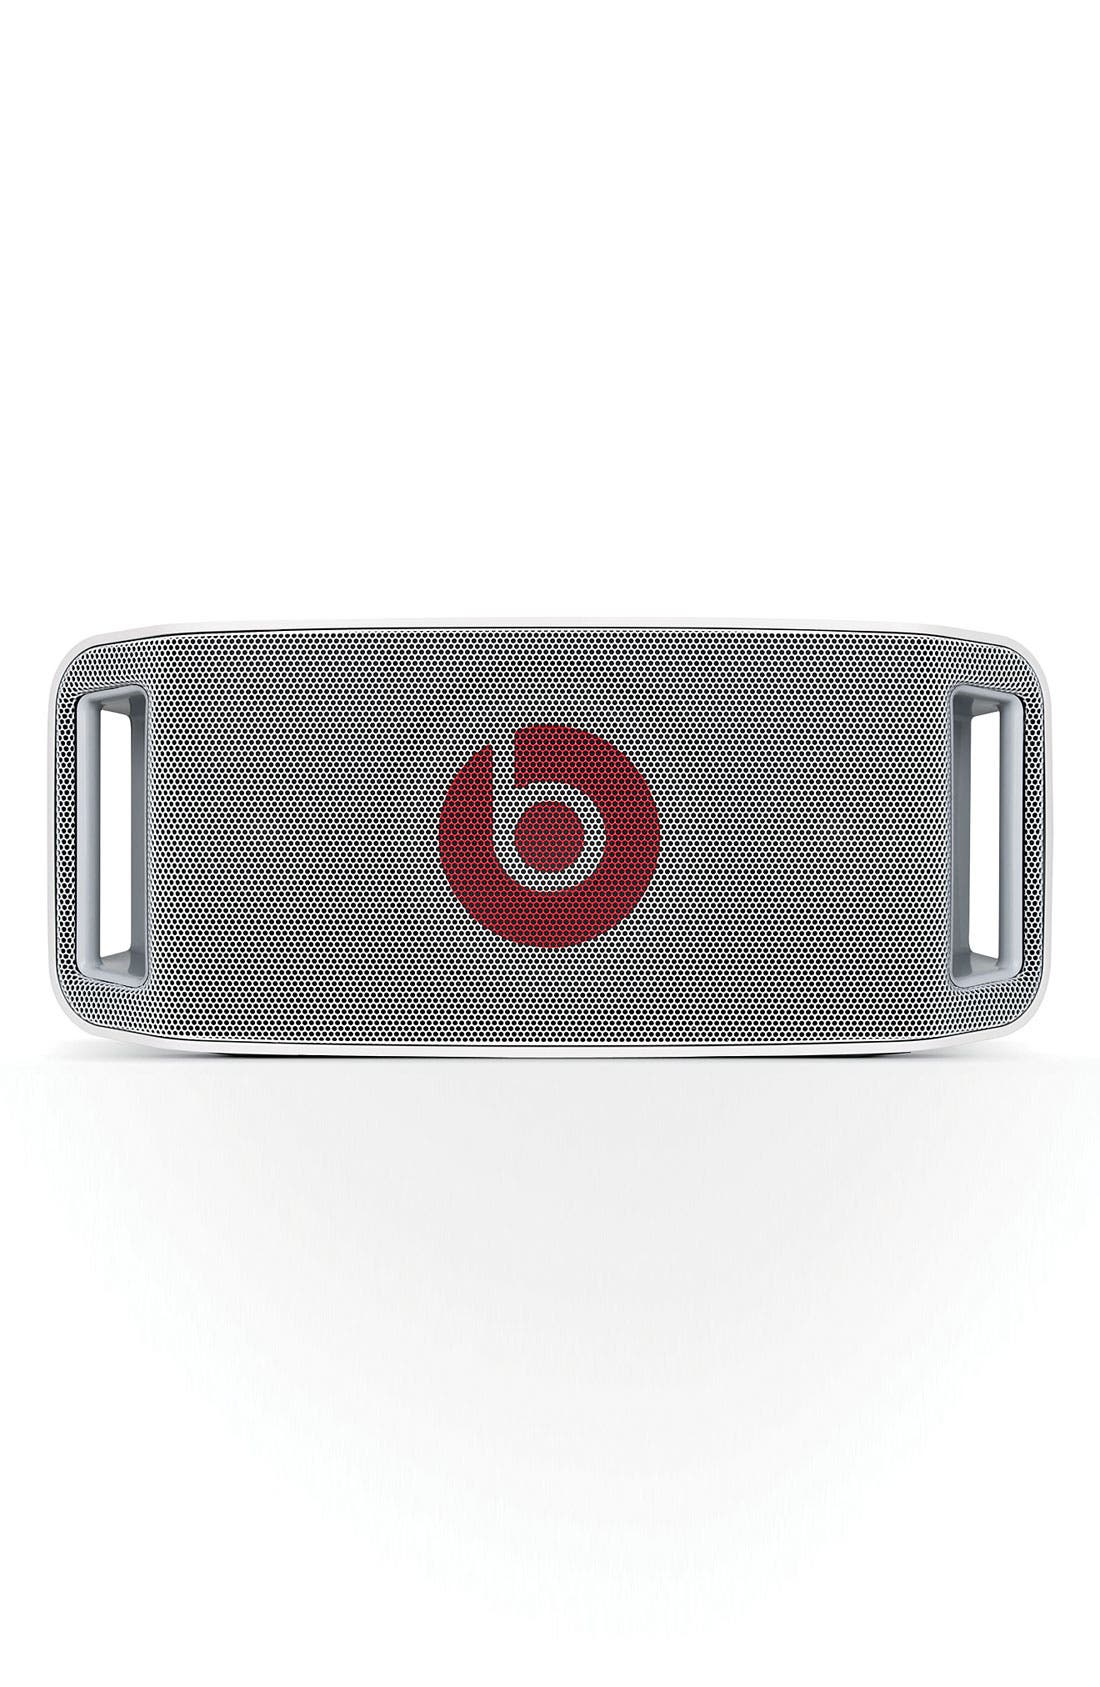 Alternate Image 1 Selected - Beats by Dr. Dre™ 'Beatbox™' High Performance Portable Audio System from Monster®